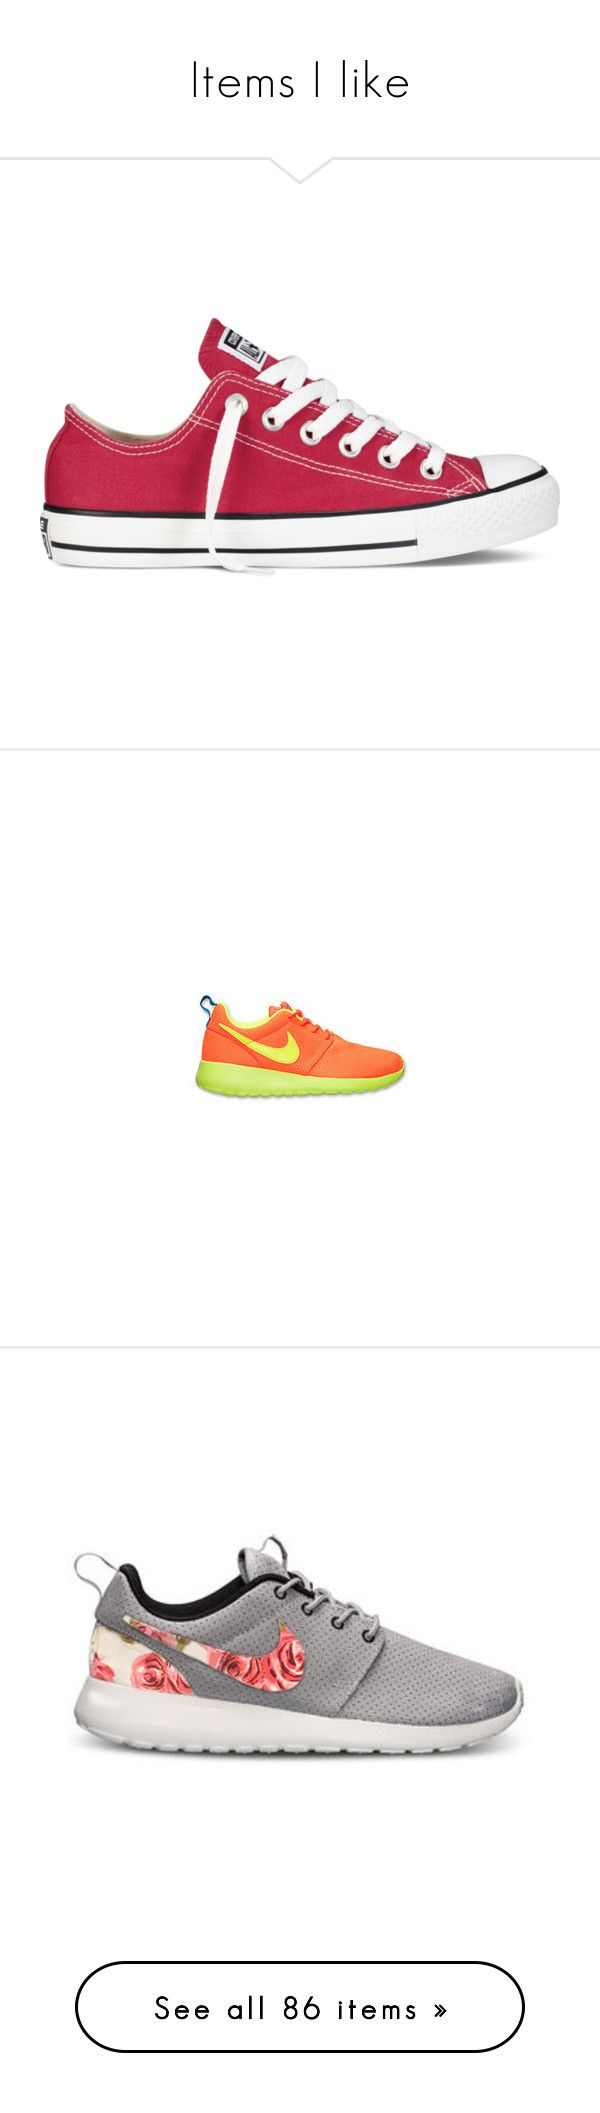 """""""Items I like"""" by jadasmith1 ❤ liked on Polyvore featuring shoes, sneakers, converse, red, chaussures, red shoes, converse shoes, star shoes, rocker shoes and rubber sole shoes"""